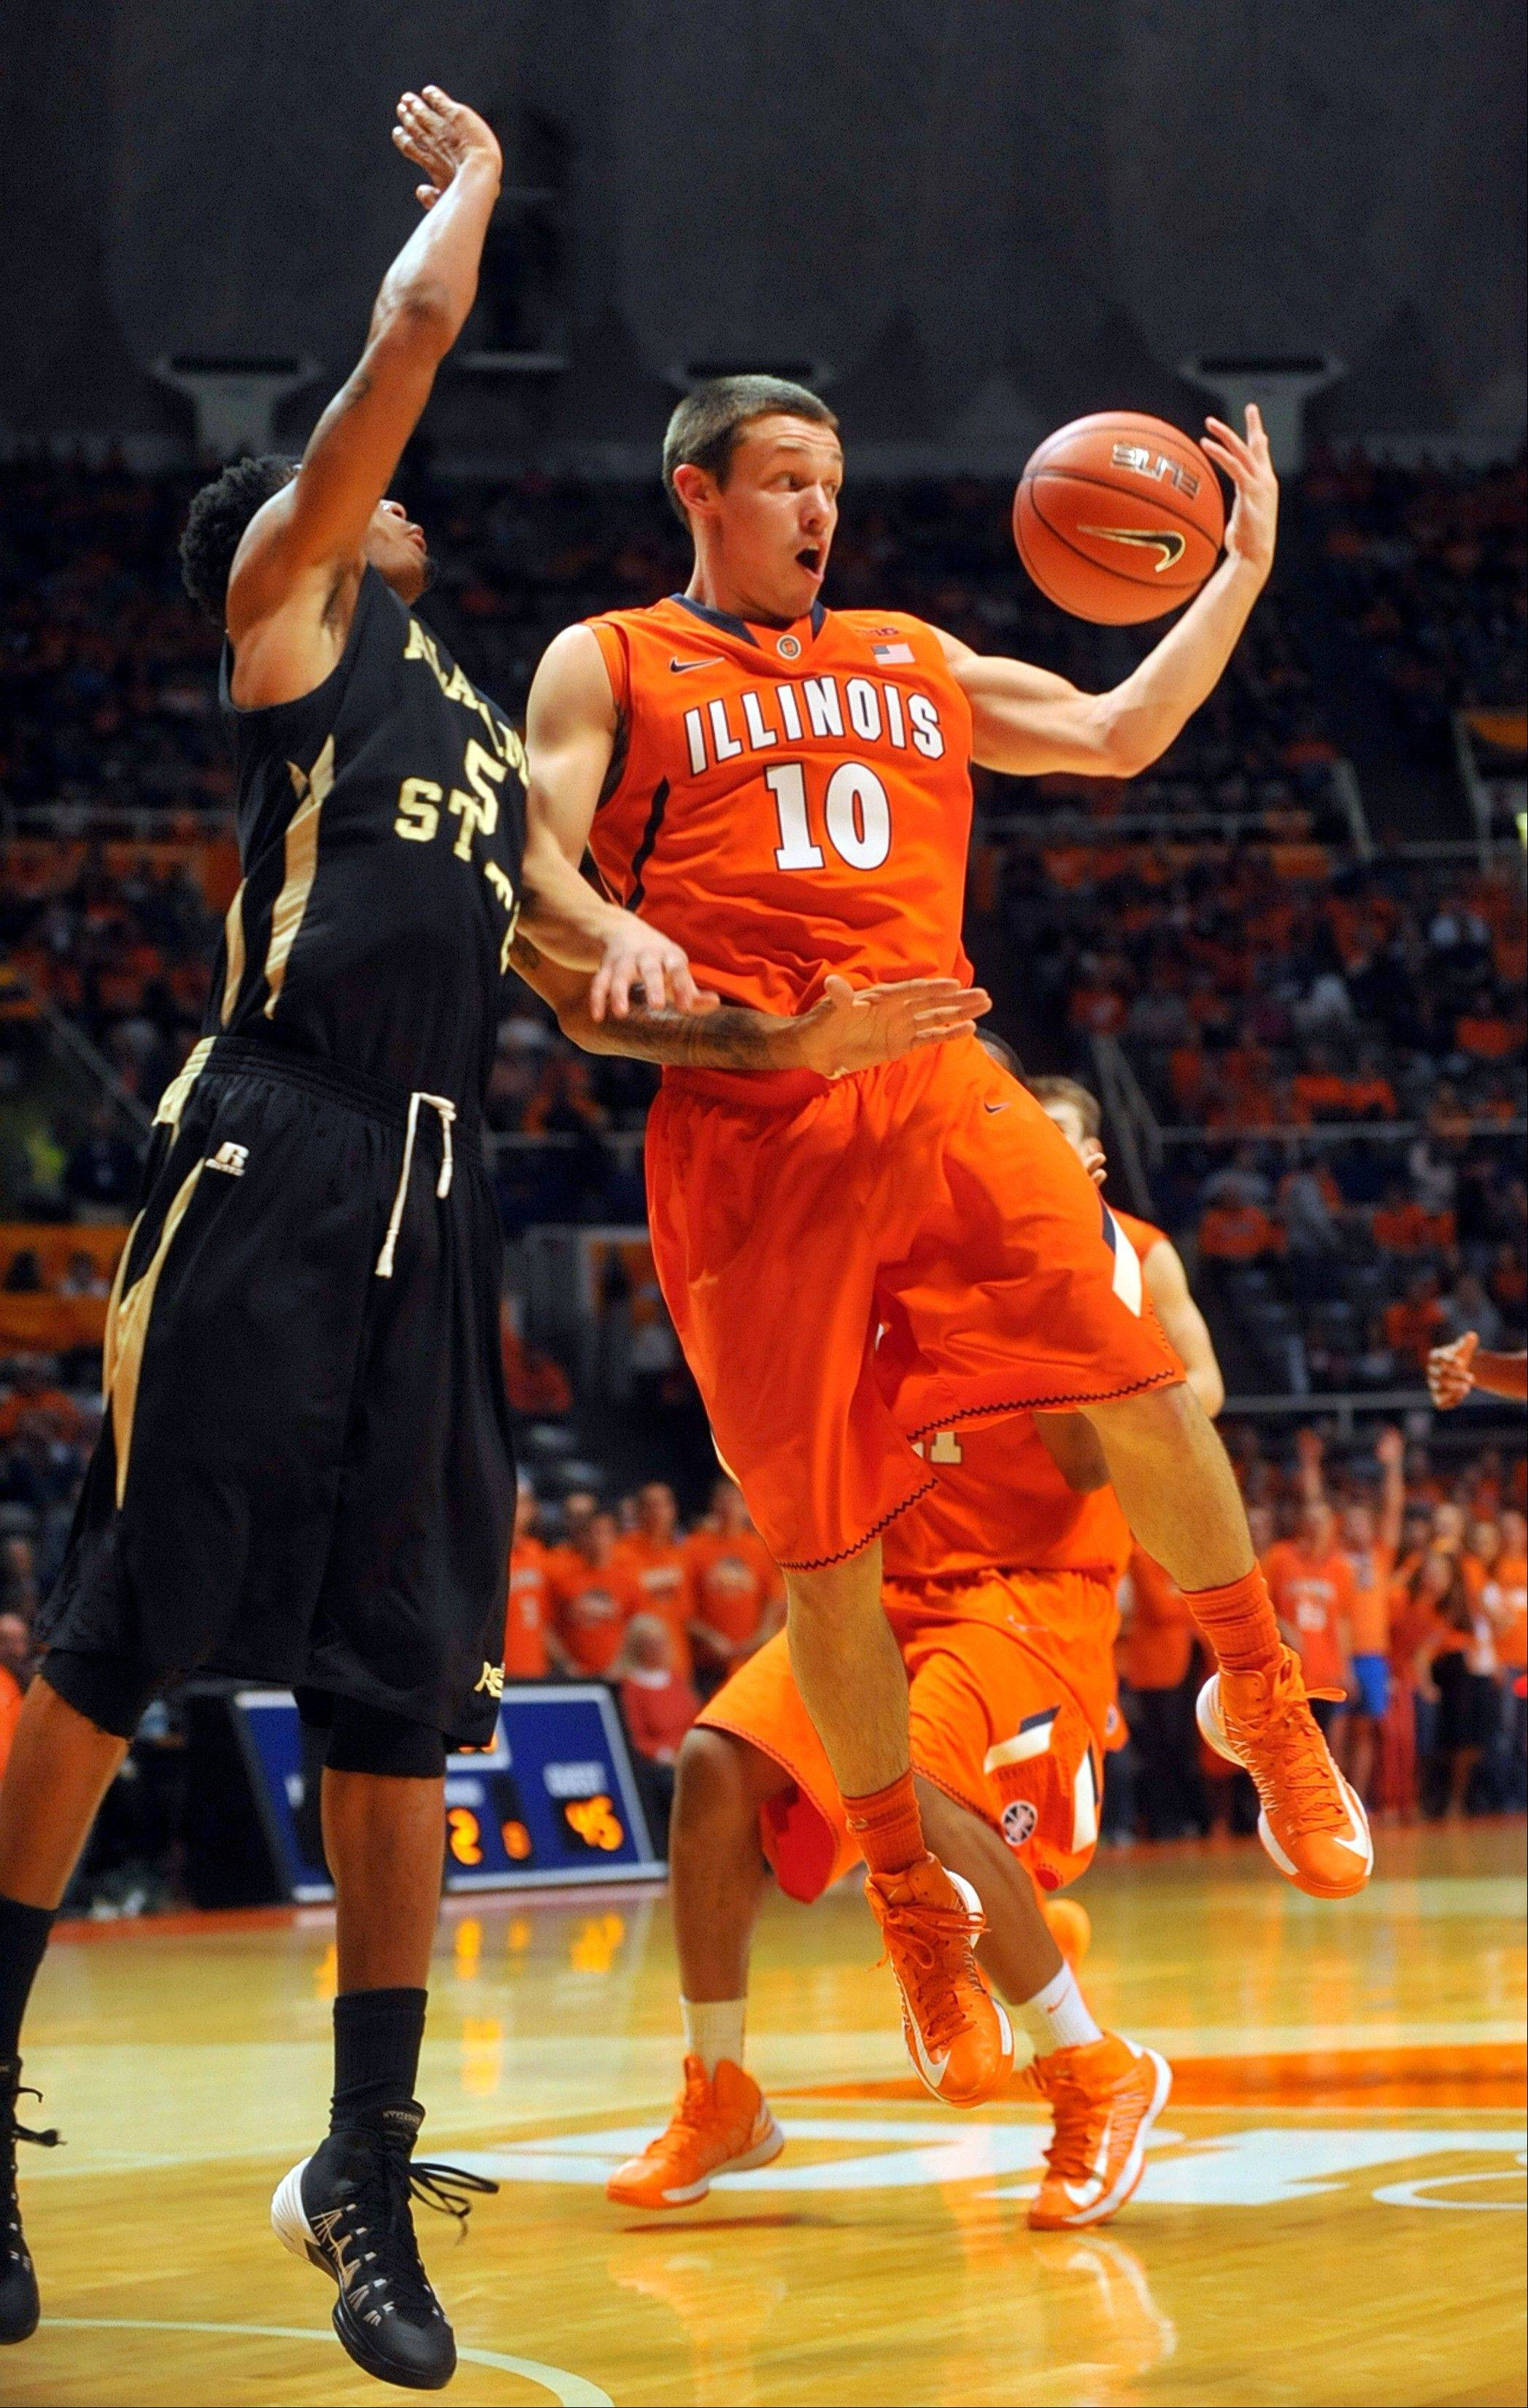 Illinois guard Mike LaTulip (10) drops a pass back near Alabama State's Bobby Brown (5) in the second half in an NCAA college basketball game Friday, Nov. 8, 2013, in Champaign, Ill. (AP Photo/Rick Danzl)